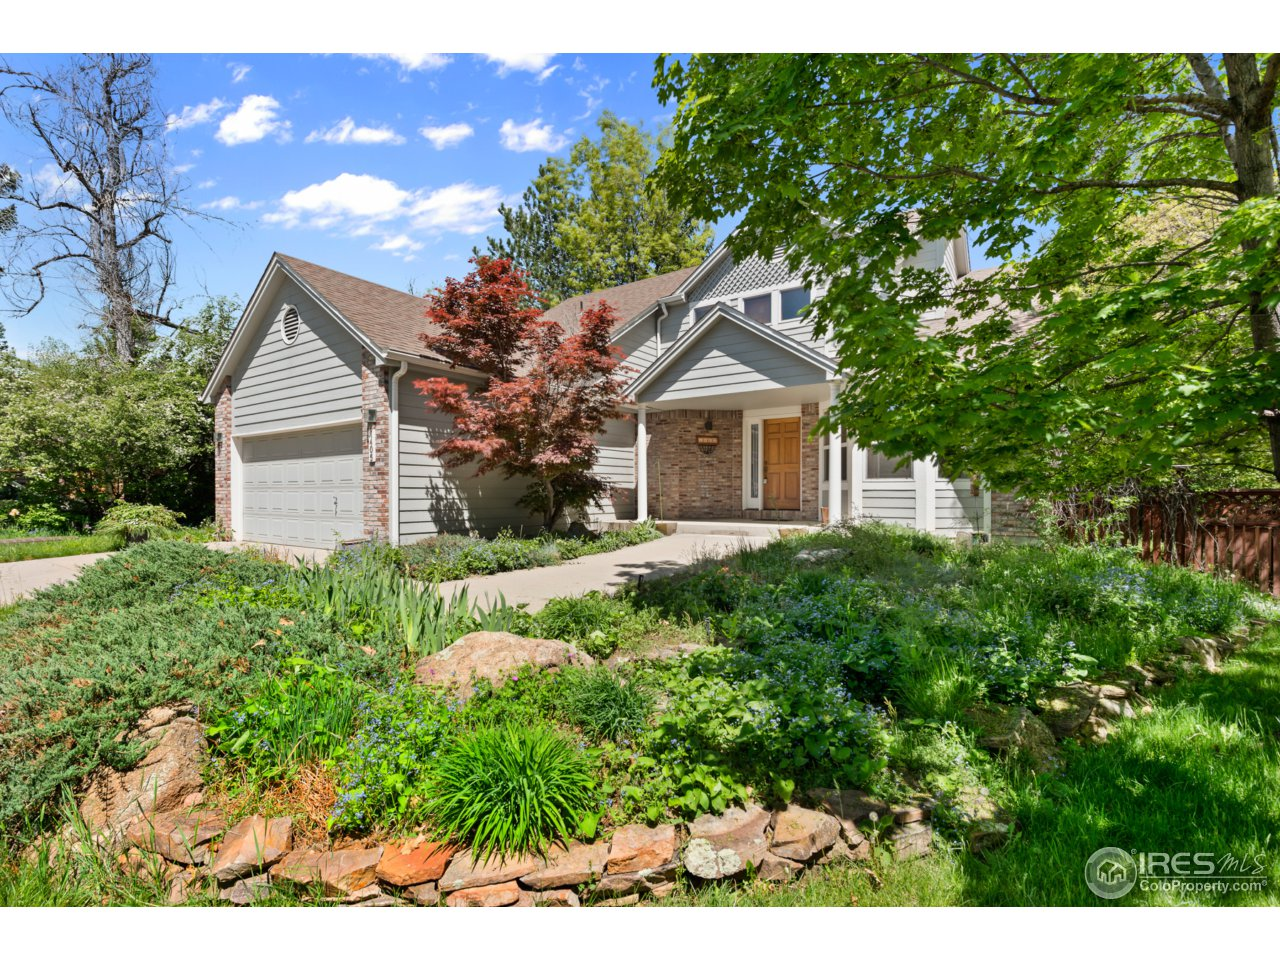 1405 Kalmia Ave, Boulder CO 80304